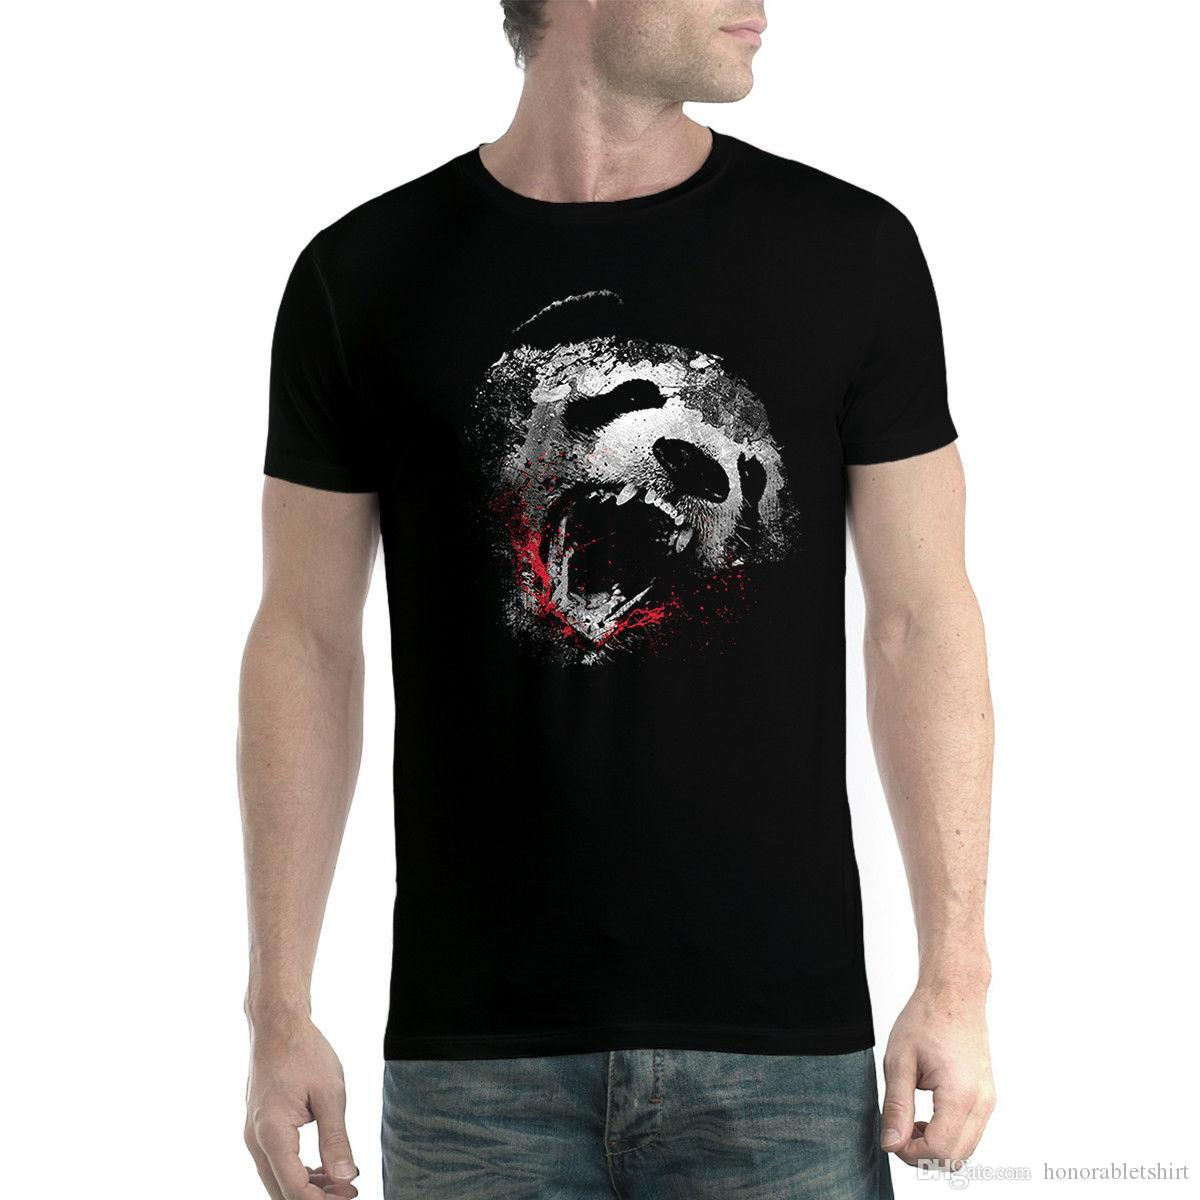 f8389d89c5ebe6 Killer Panda Tiere Herren T Shirt XS 5XL Neu T Shirts Online Shopping Buy T  Shirts From Honorabletshirt